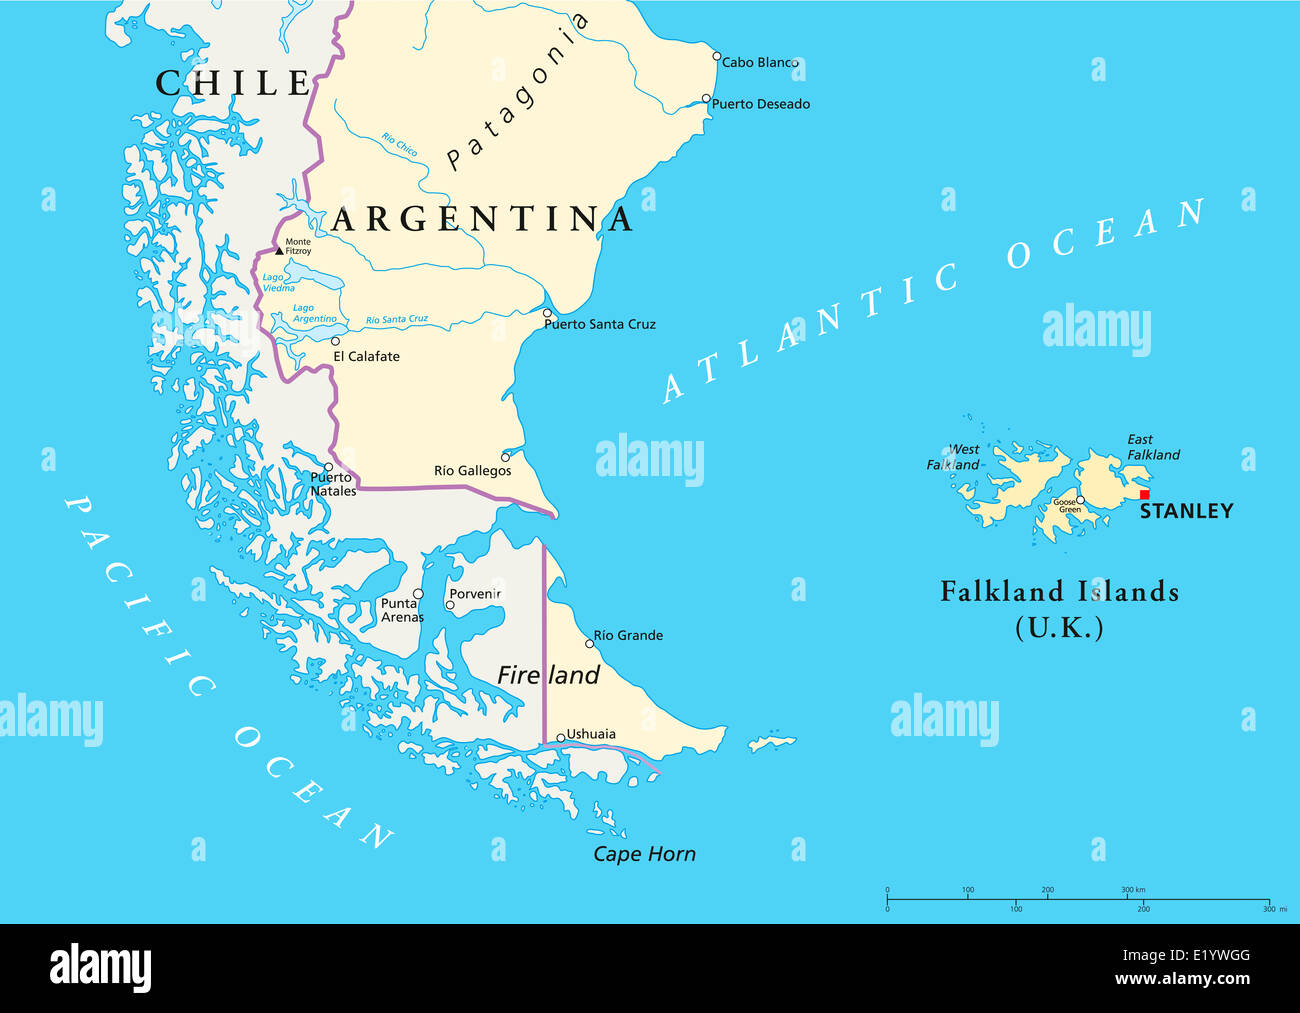 Falkland Islands Political Map and part of South America with